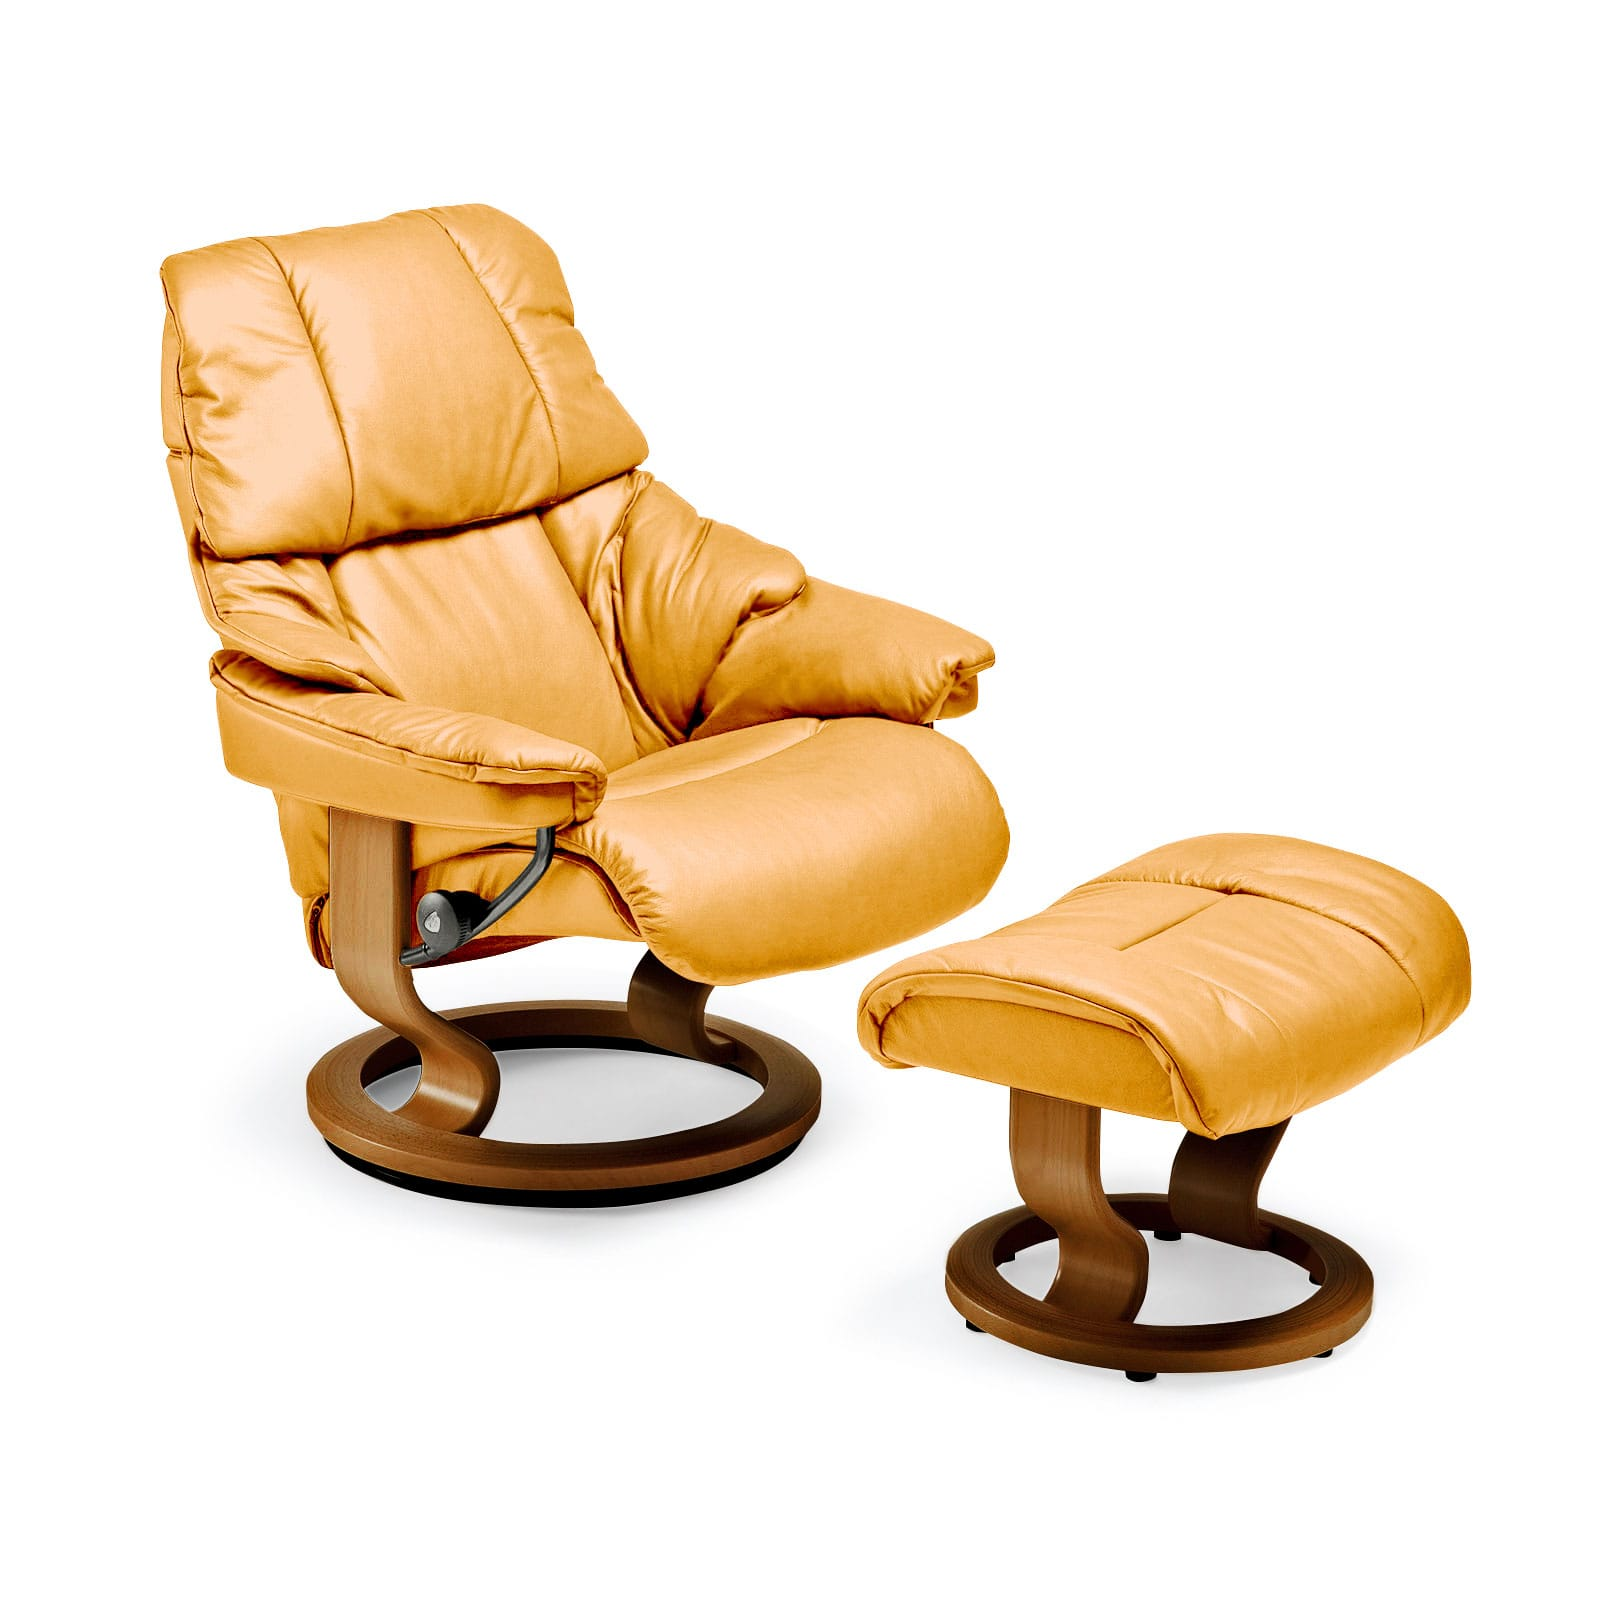 Stressless sessel reno l classic mit hocker stressless for Relaxsessel mit hocker microfaser